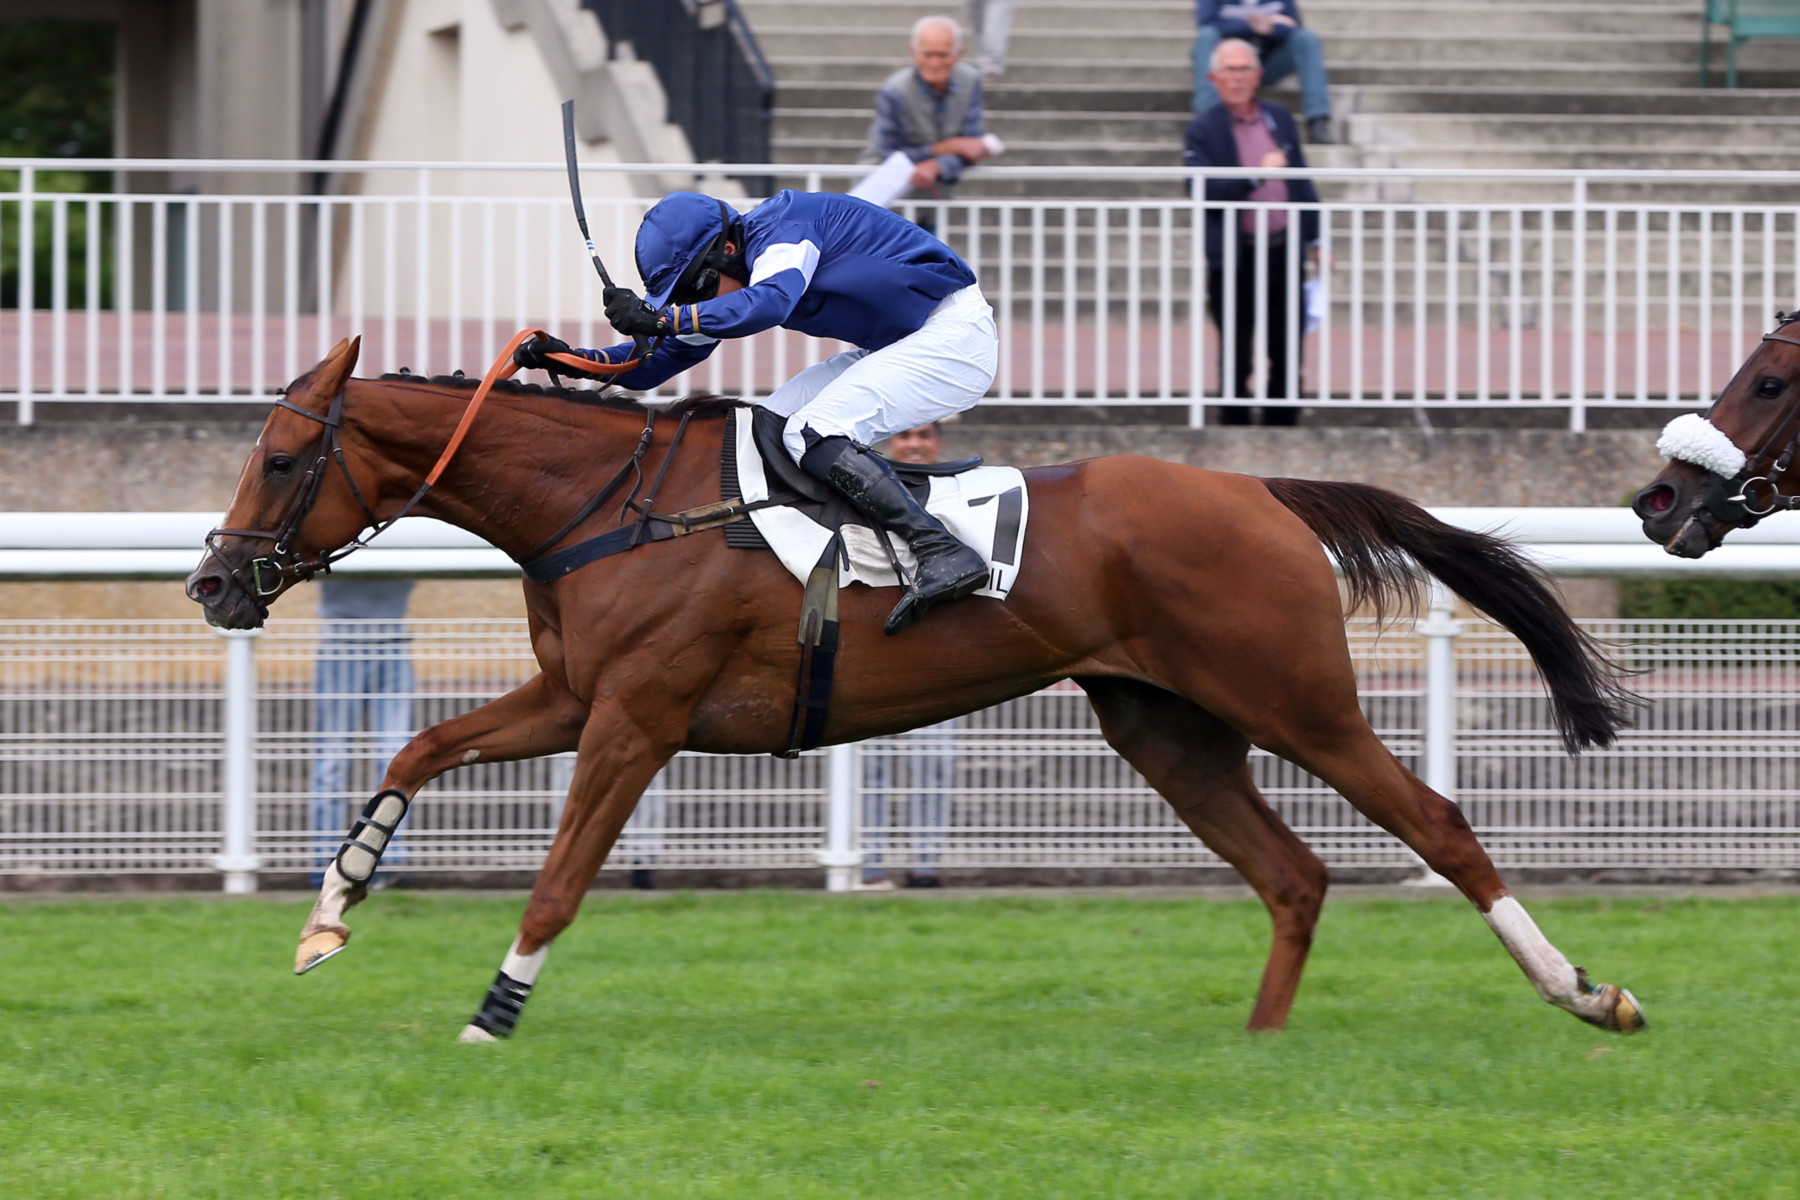 PRIX BERNARD SECLY (L) - Casablanca Mix vs Brishkille : un duel d'AQPS de talent